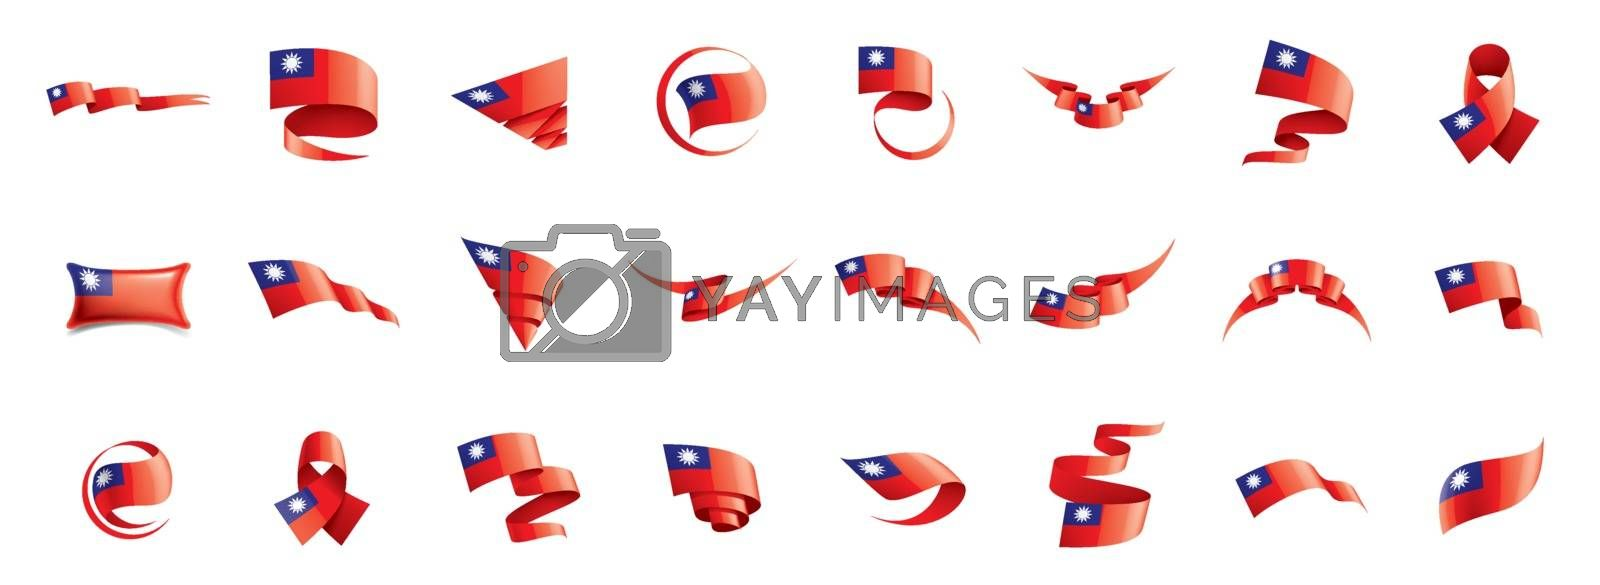 Taiwan flag, vector illustration on a white background by Butenkov